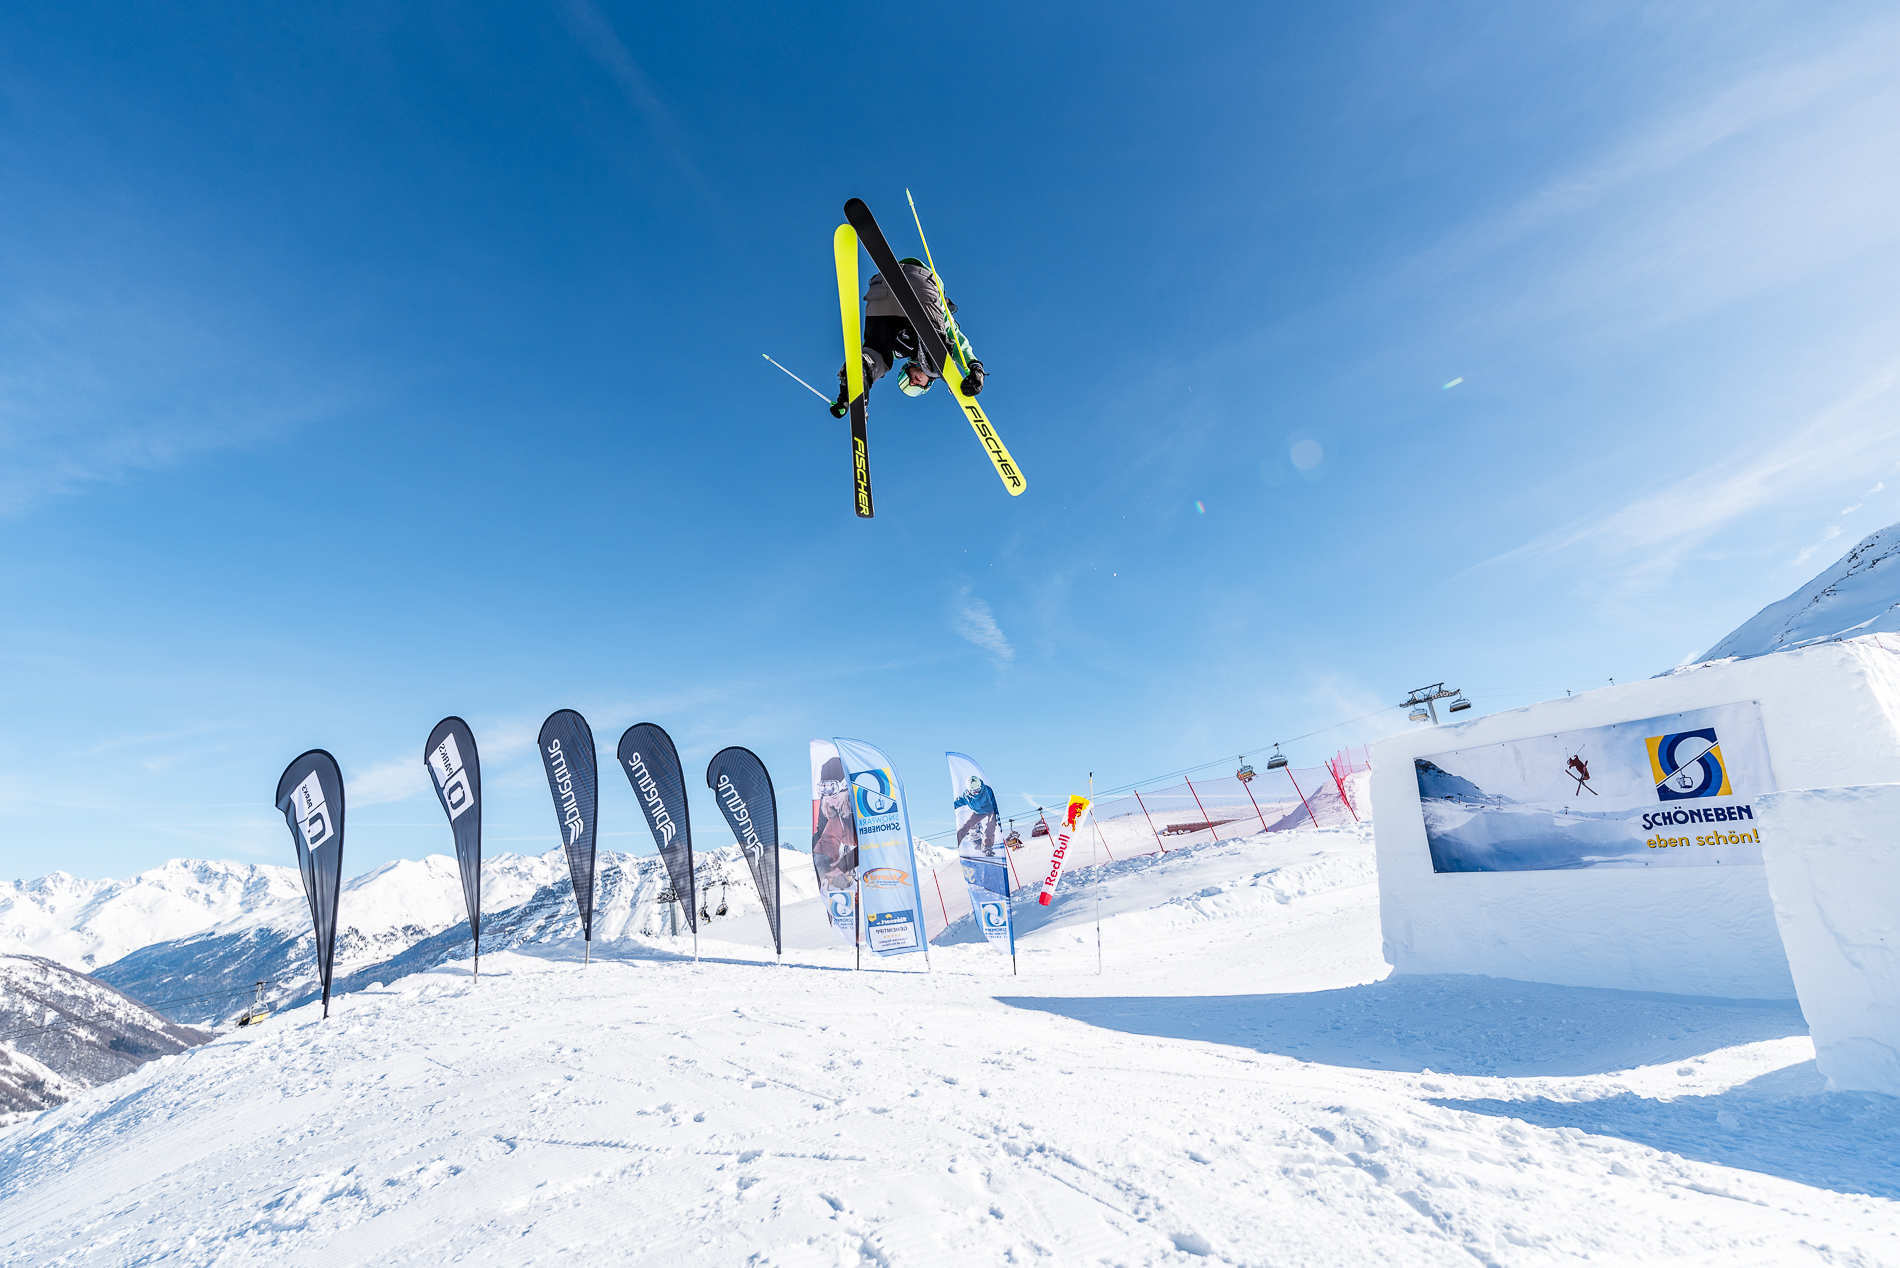 schoeneben 09 02 2019 action fs christian riefenberg qparks 2 6